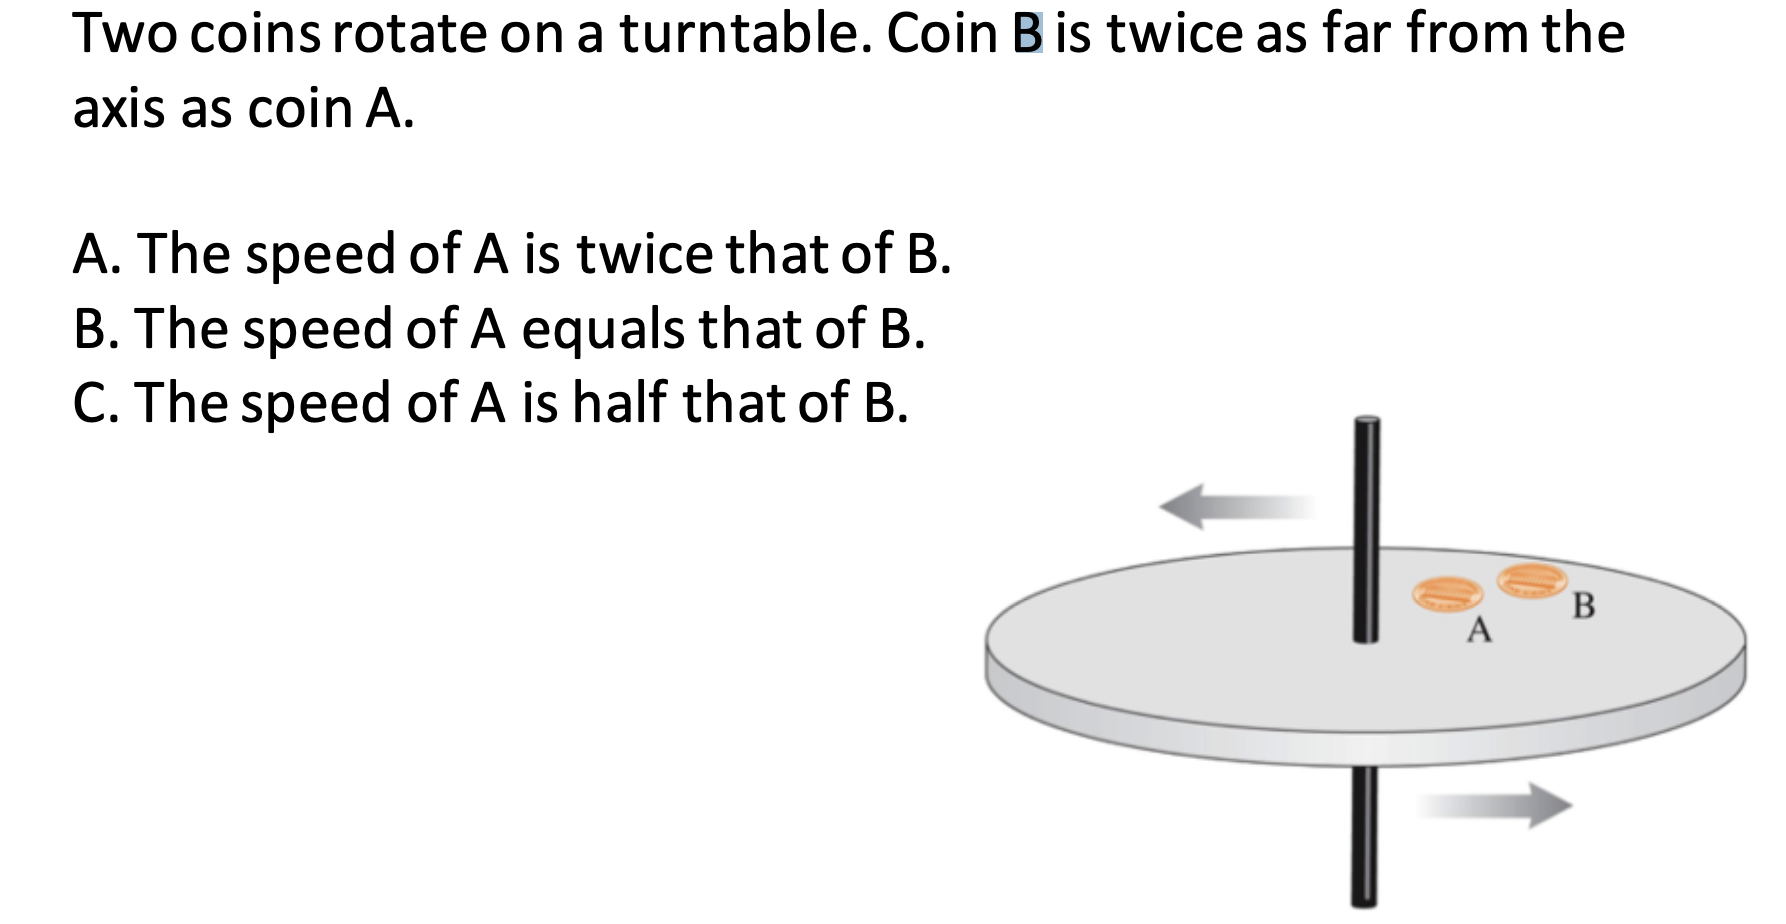 Two coins rotate on a turntable. Coin B is twice as far from the axis as coin A A. The speed of A is twice that of B B. The speed of A equals that of B C. The speed of A is half that of B В